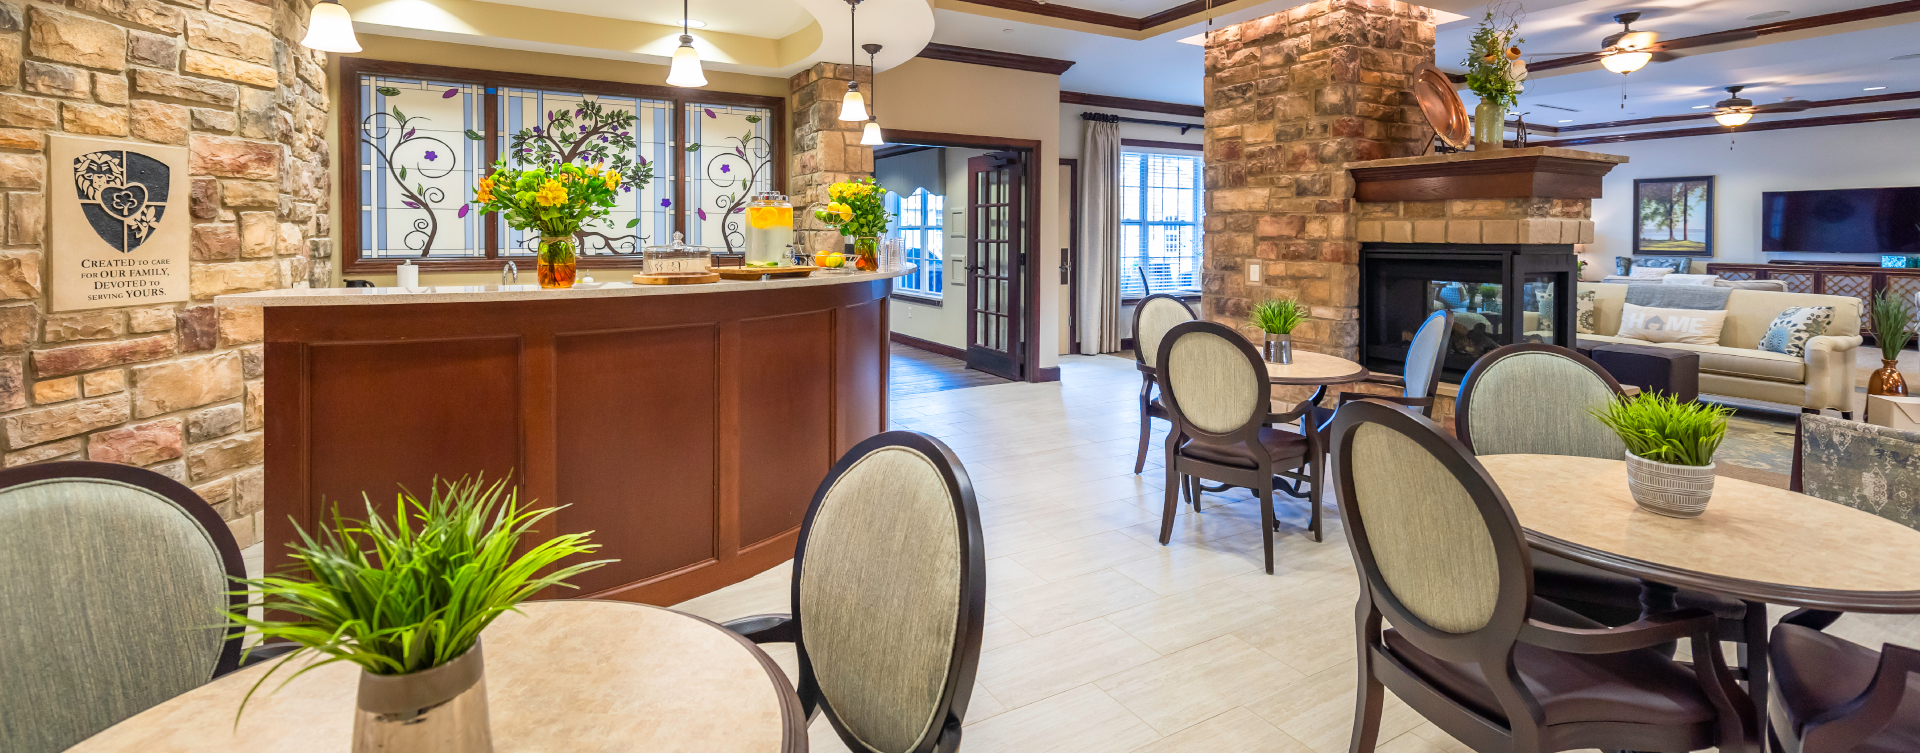 Intimate enough to entertain your closest family; you can even host your next get together in the bistro at Bickford of Shelby Township